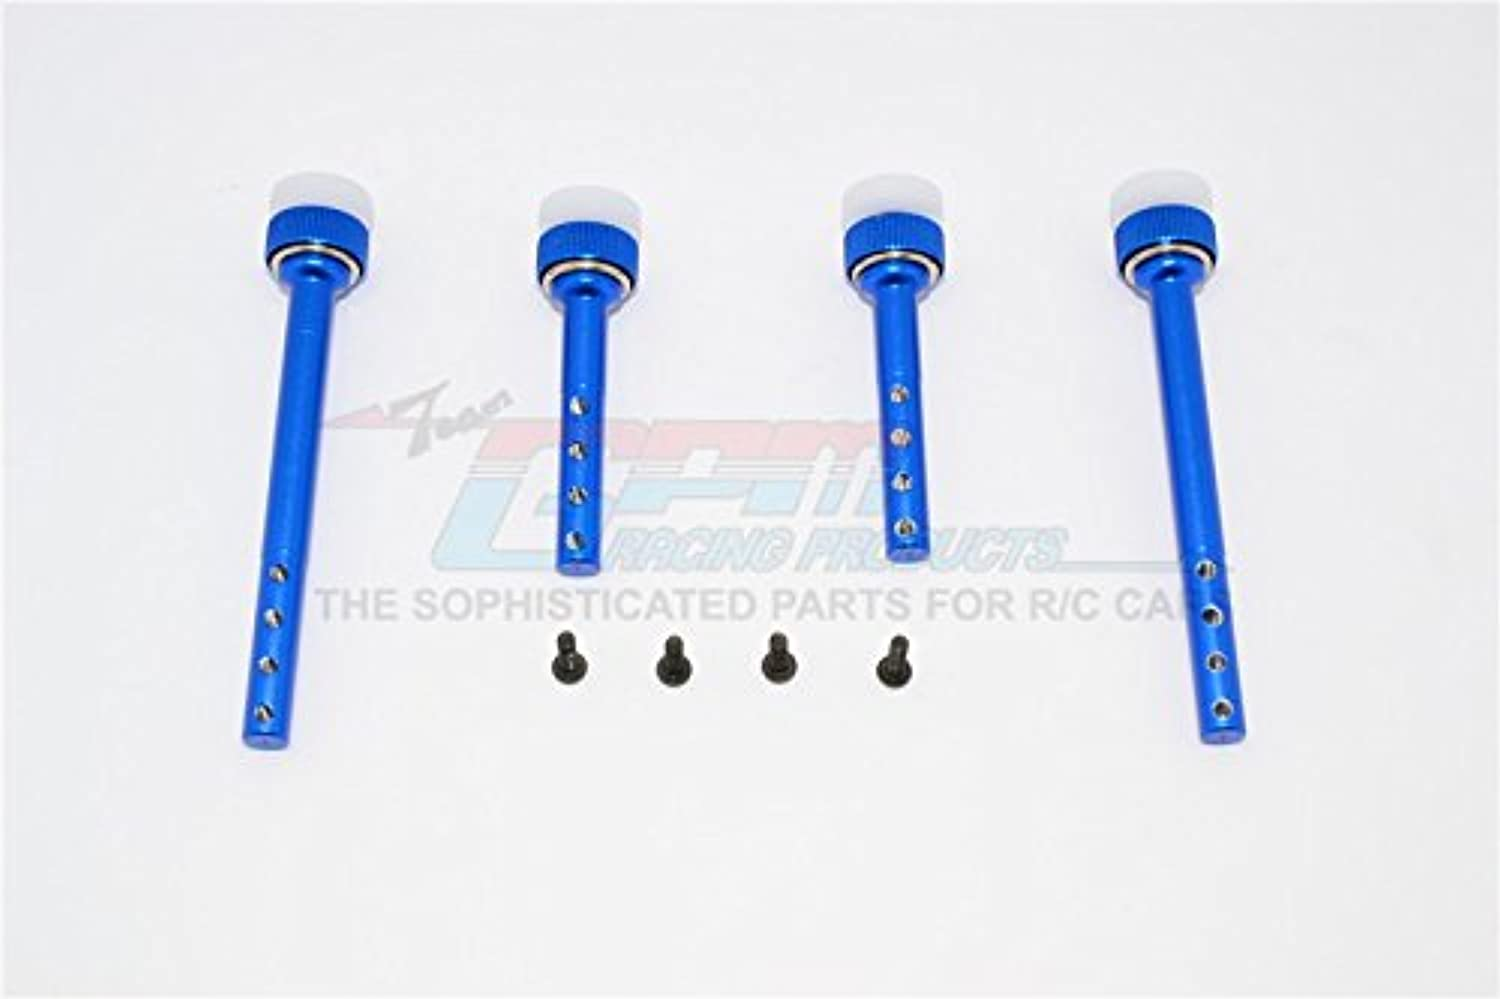 Gmade Sawback GS01 & Sawback 4LS Upgrade Parts Aluminum Front+Rear Magnet Body Post - 1 Set bluee